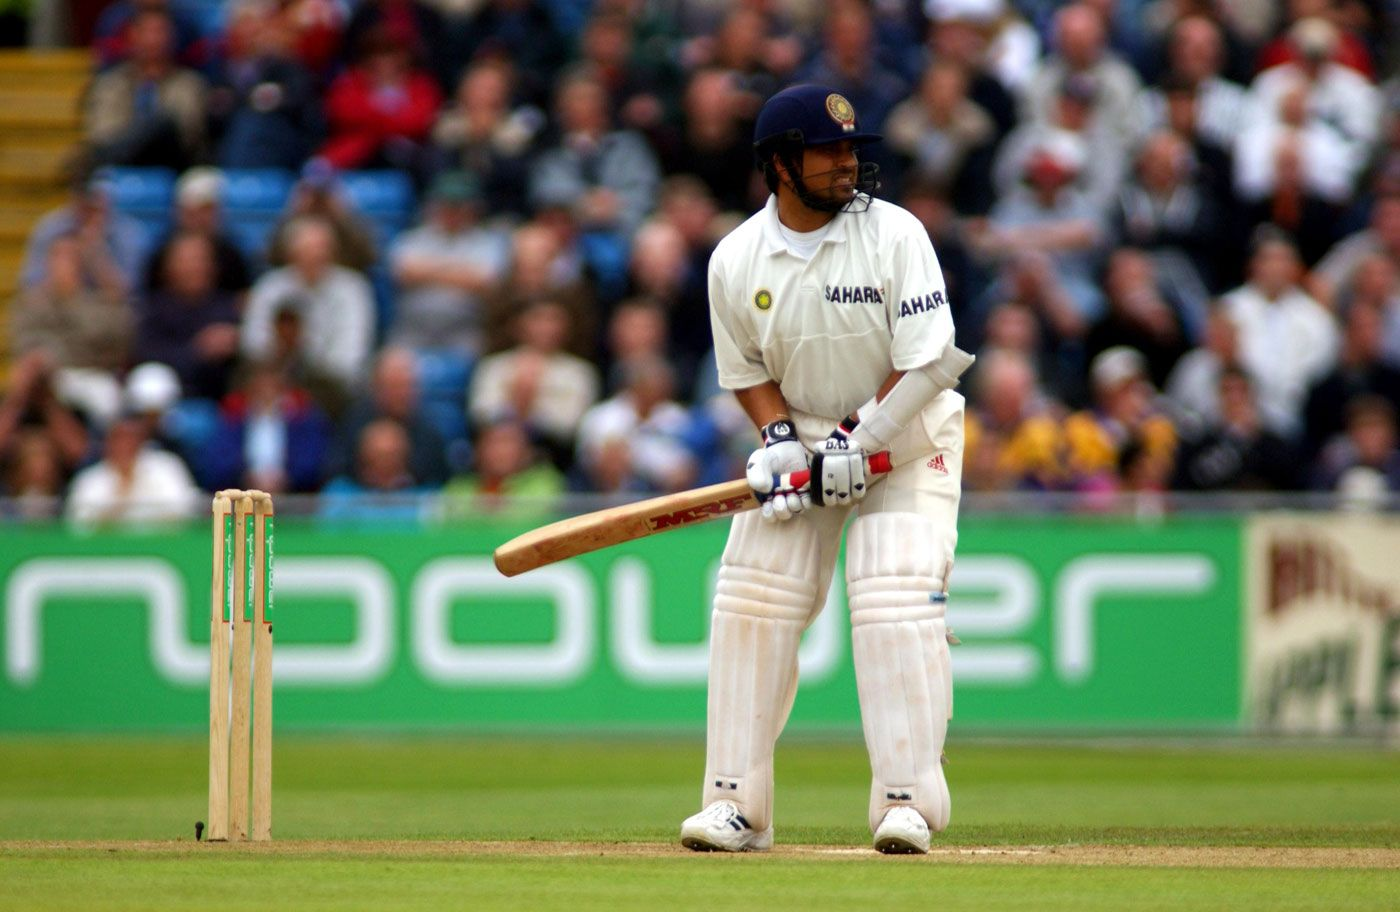 Sachin Tendulkar had the ideal natural stance: poised and ready to ...